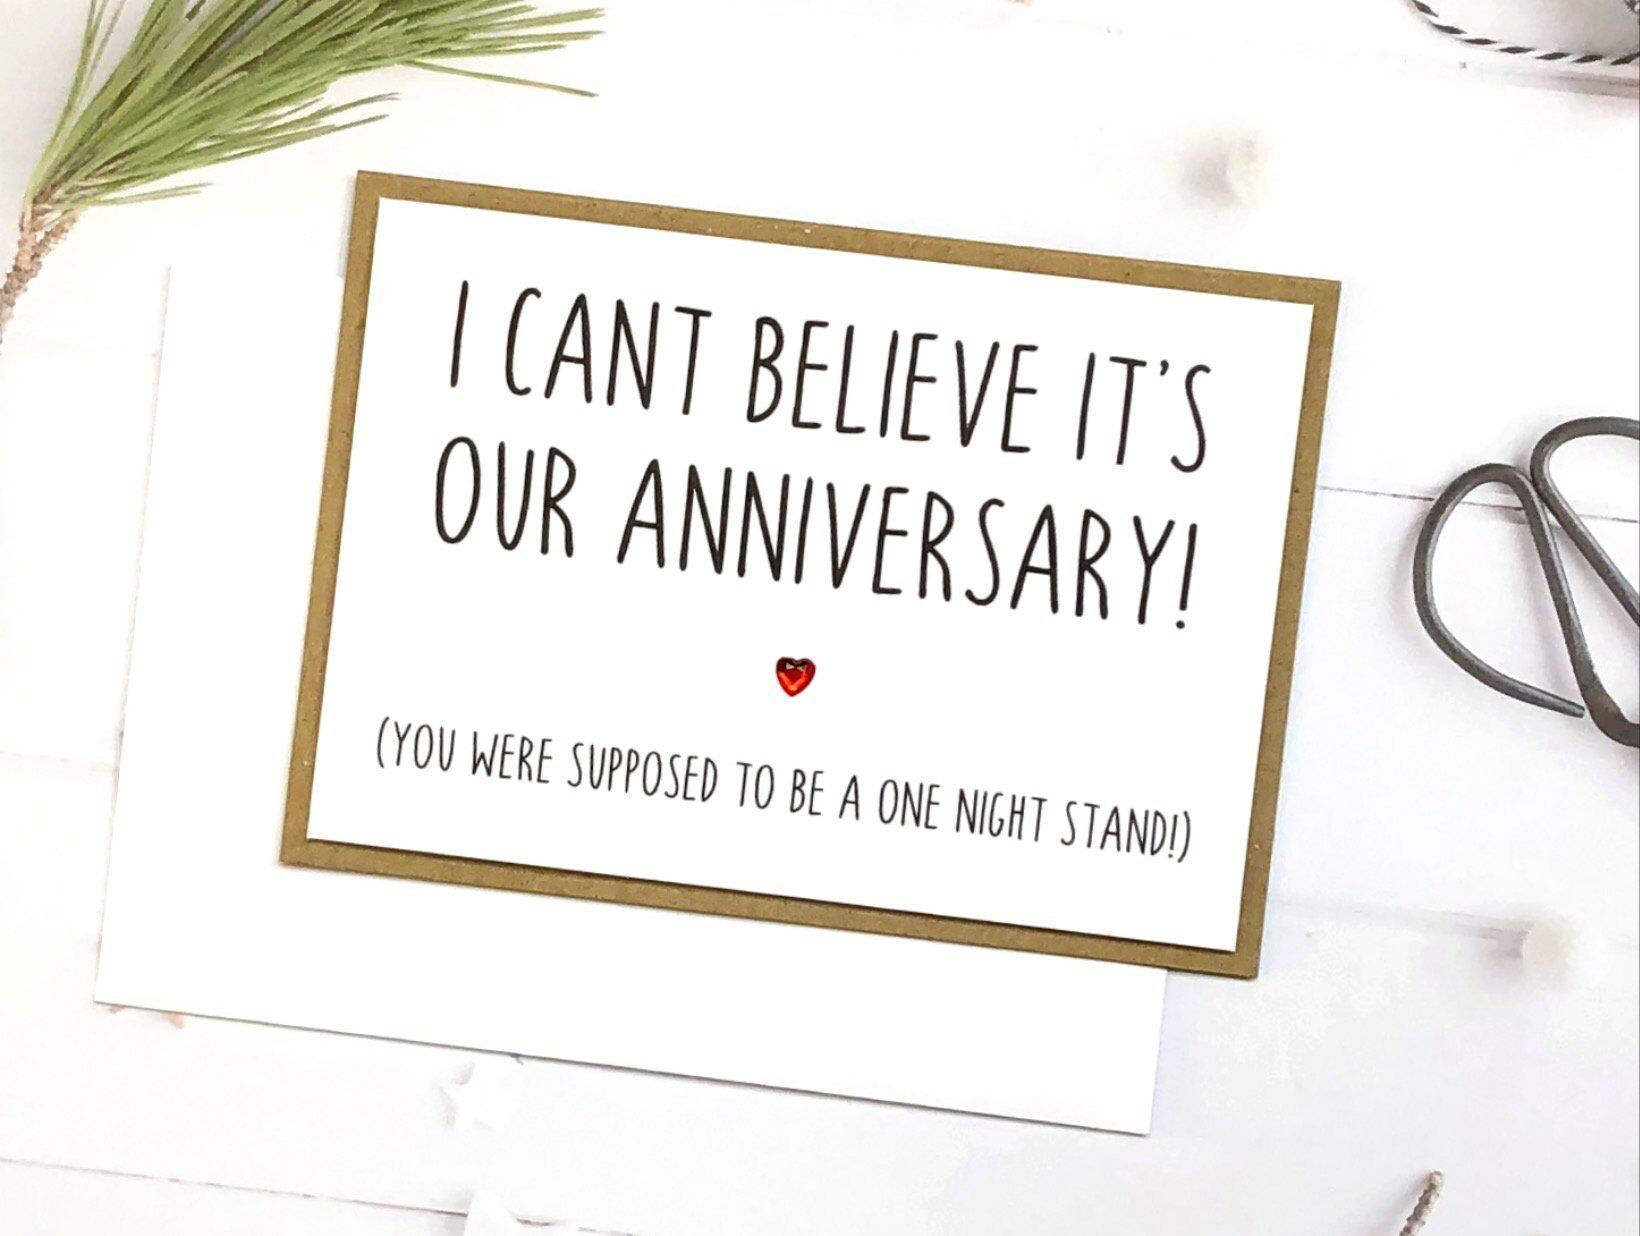 Funny Anniversary Card Anniversary Card For Boyfriend Etsy Funny Anniversary Cards Cards For Boyfriend Anniversary Cards For Boyfriend